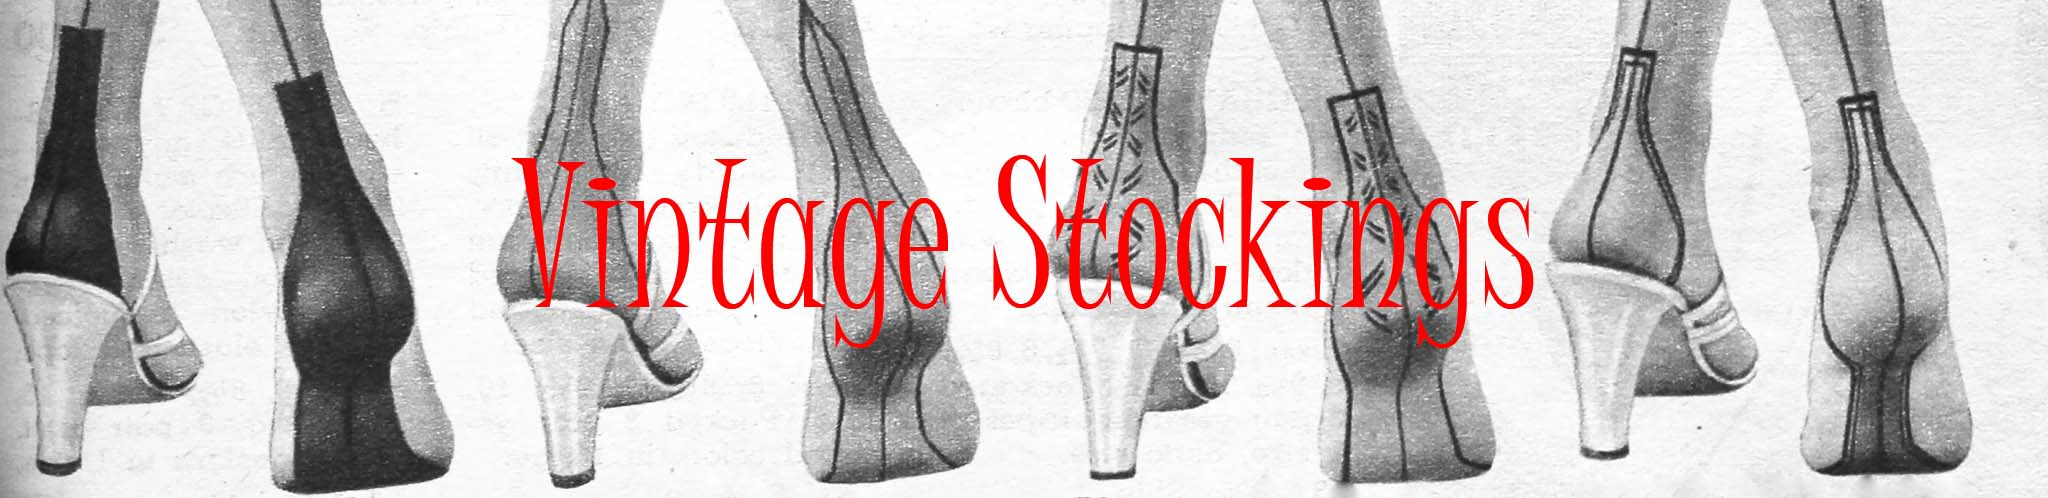 Vintage Sockings